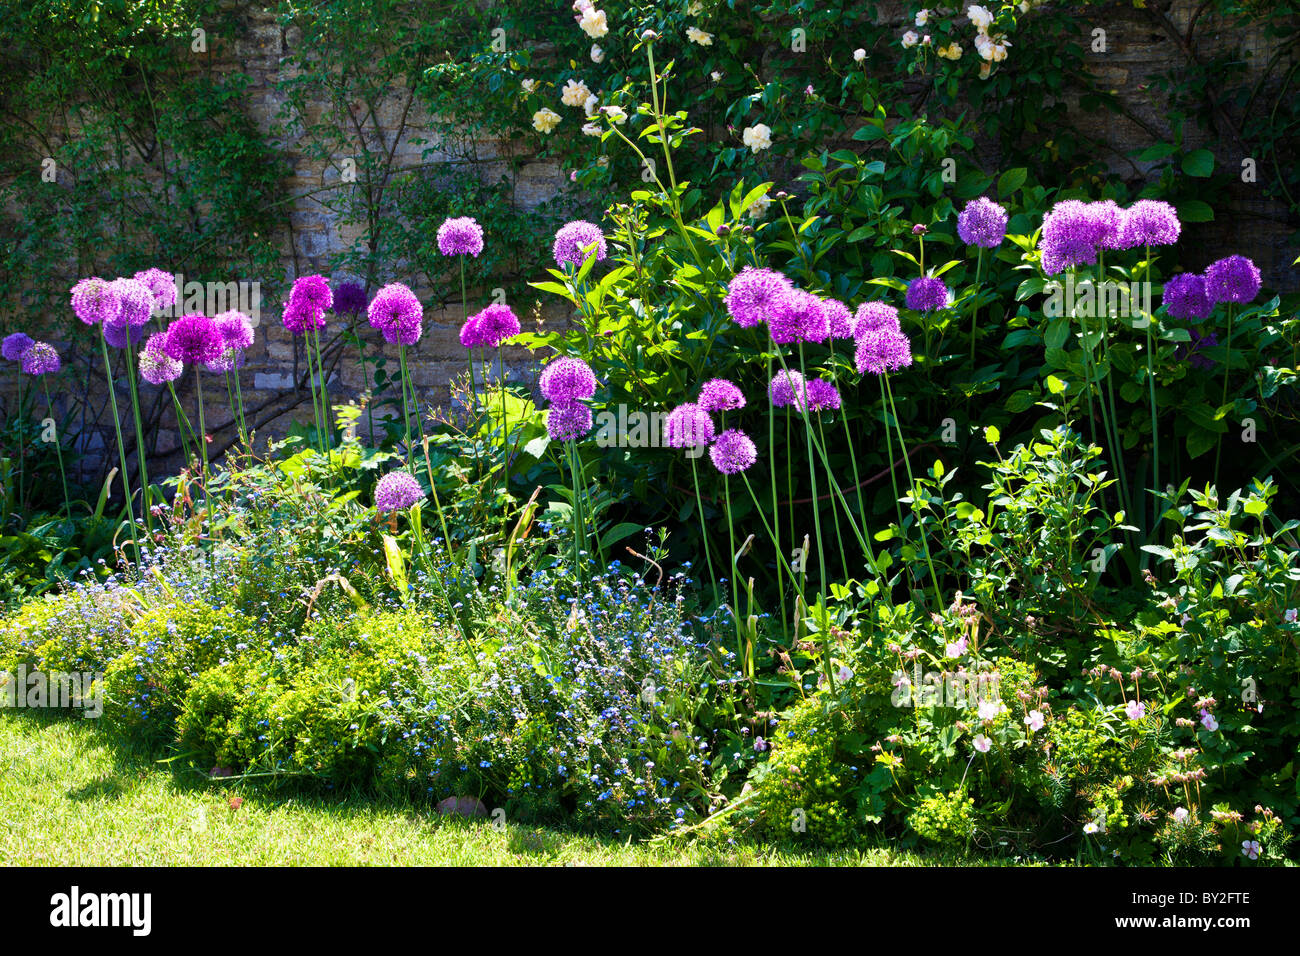 Purple alliums in the border of a walled English country summer garden - Stock Image